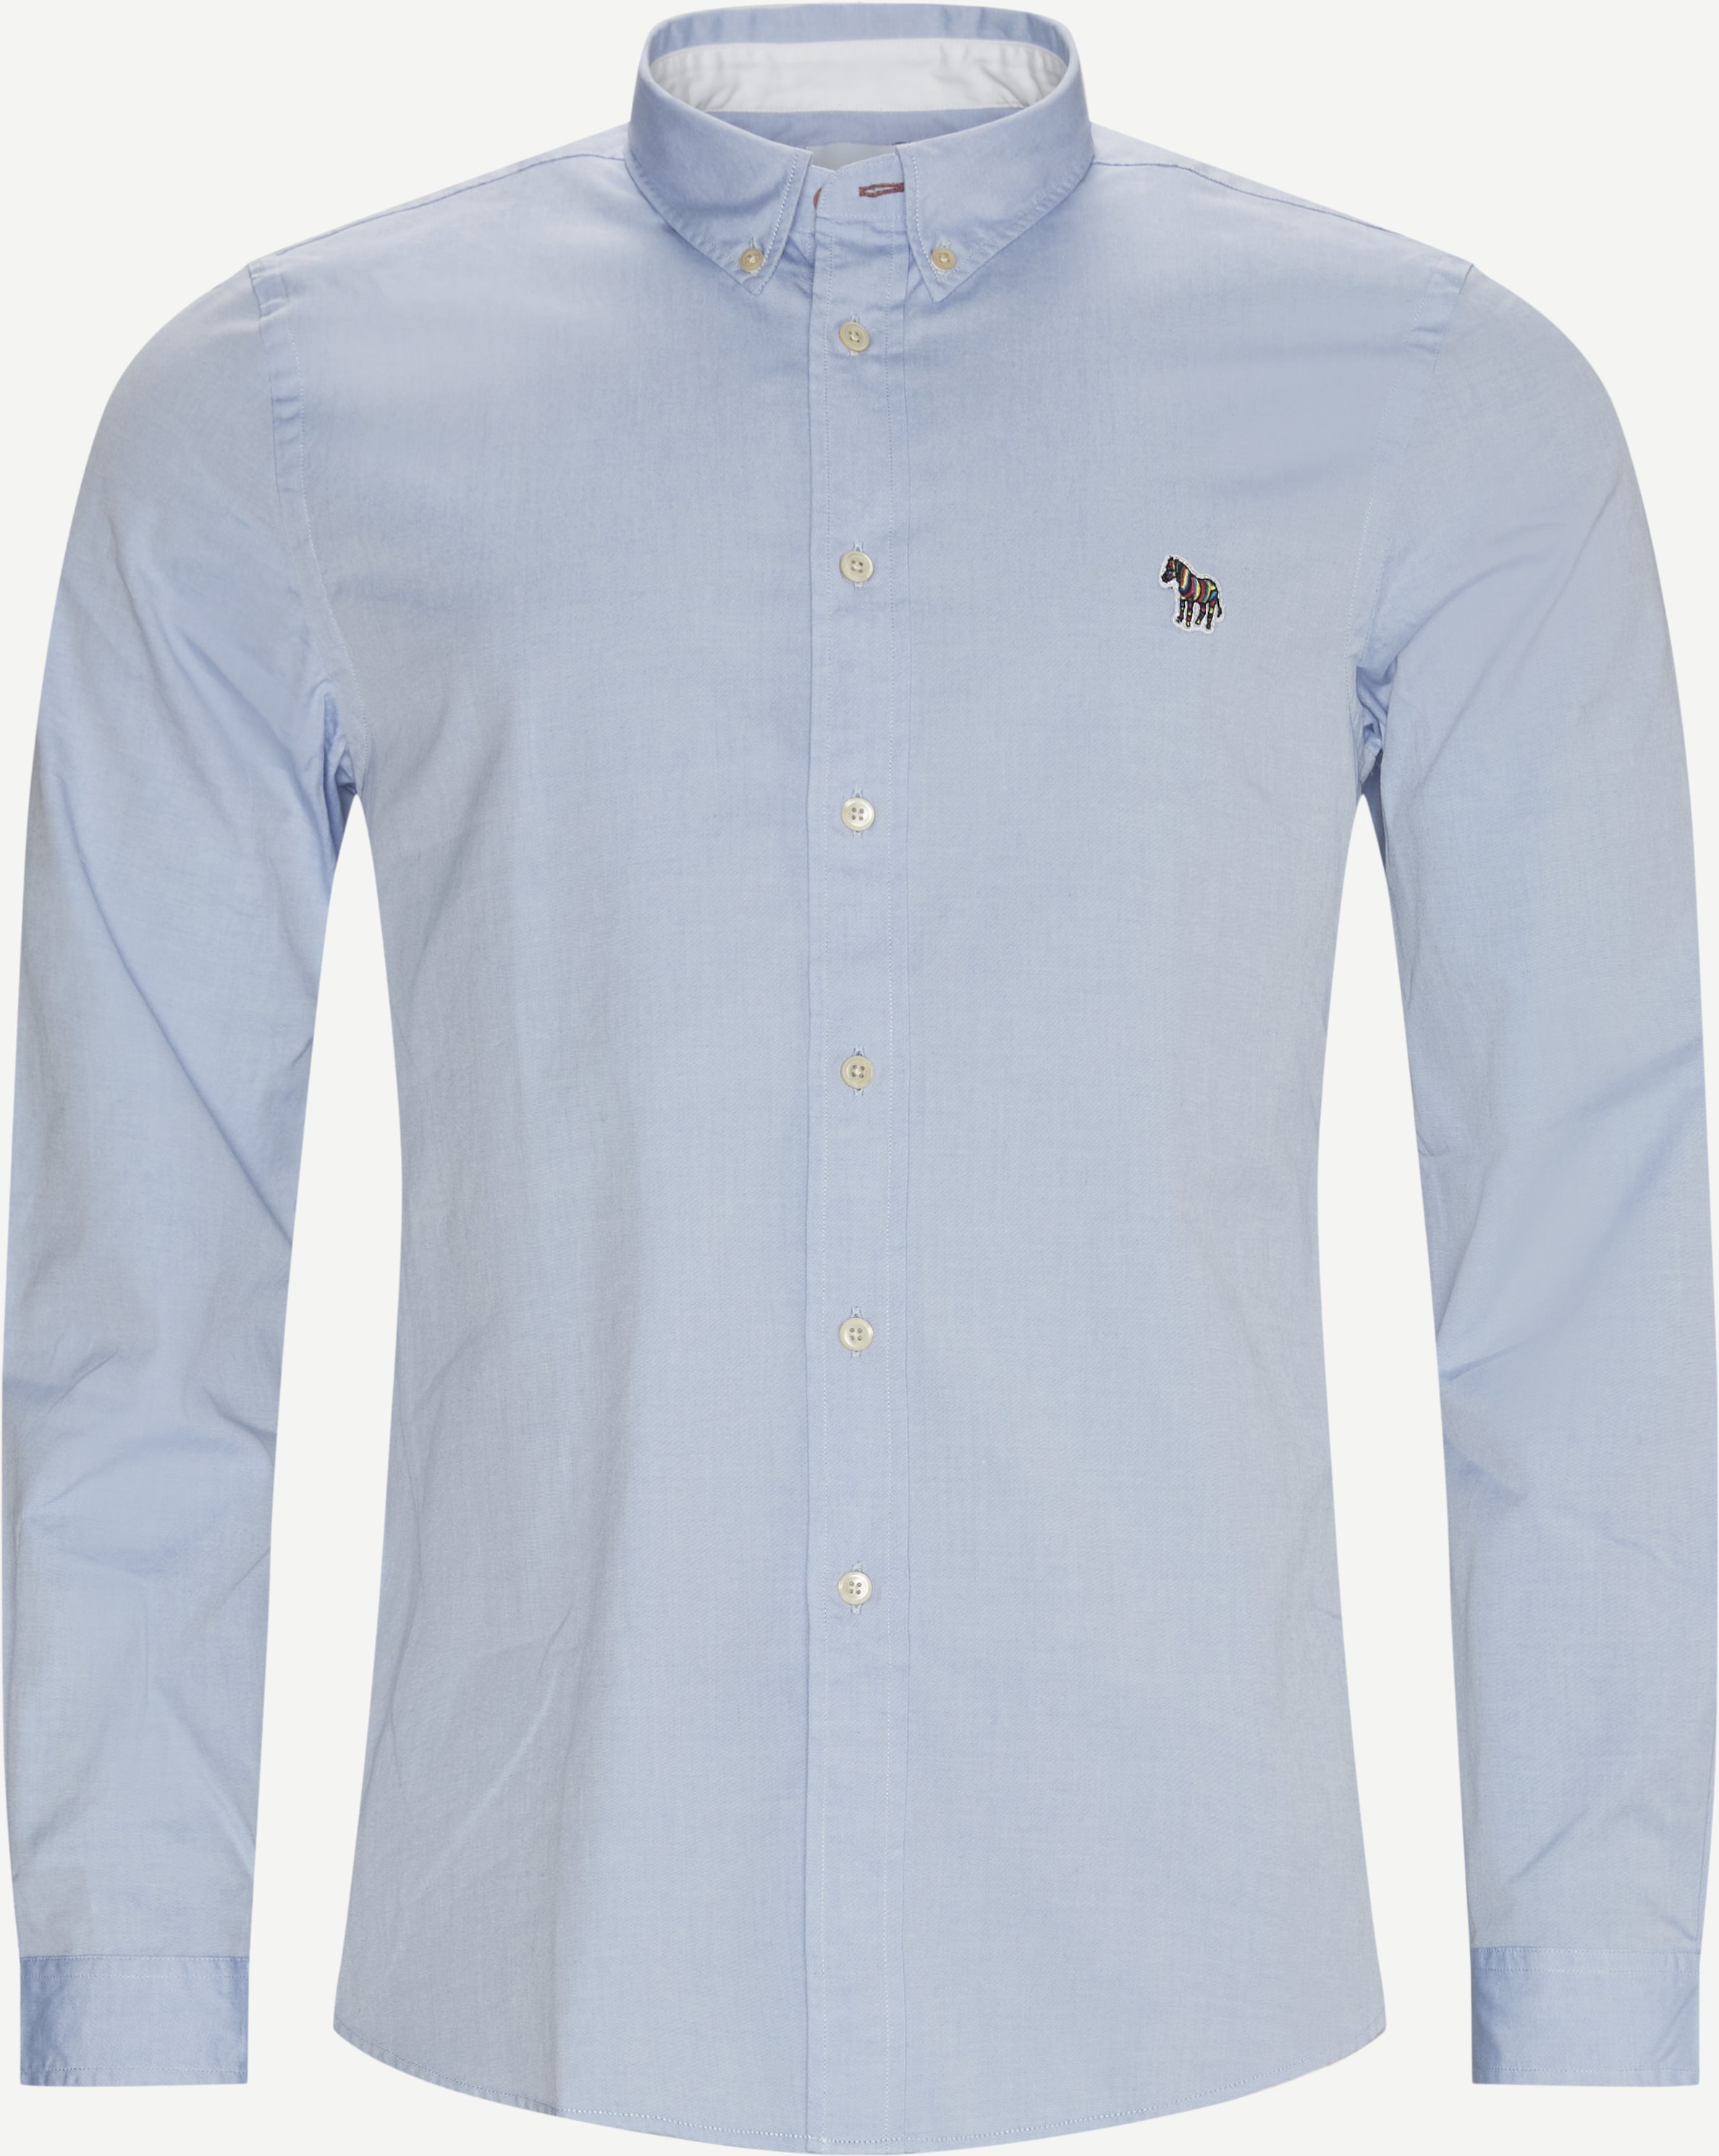 Fzebra Skjorte - Shirts - Regular - Blue